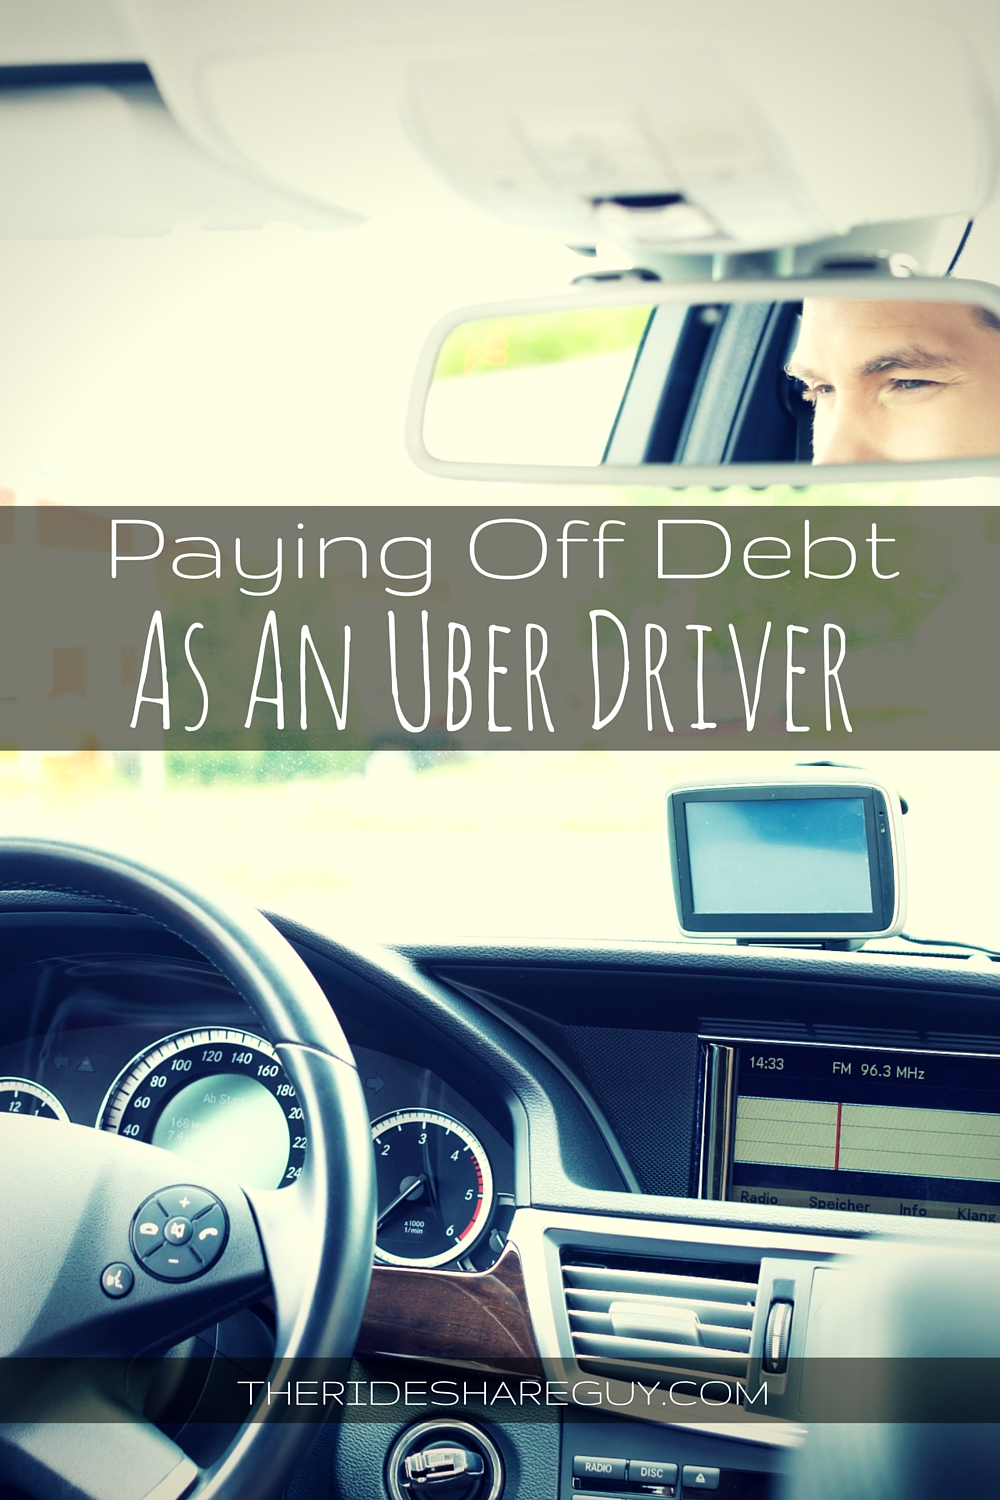 Paying Off Your Debt As An Uber Driver